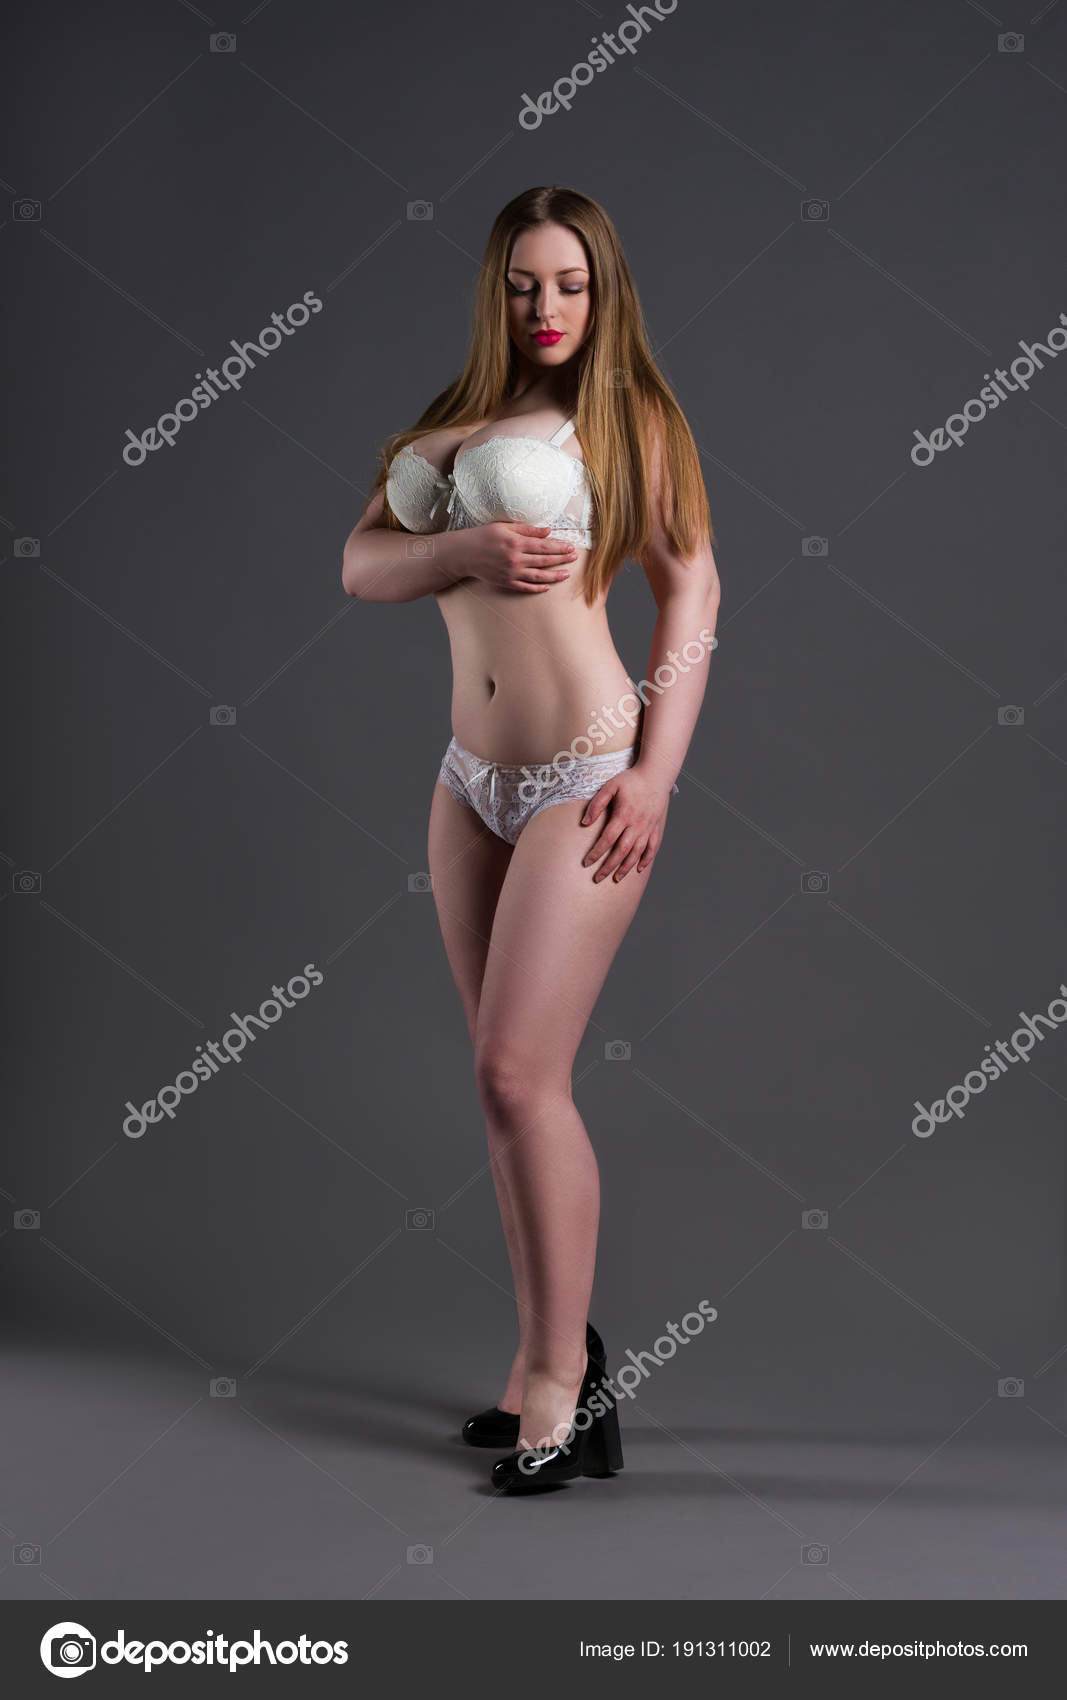 Plus size sexy model in white underwear fat woman on gray studio background overweight female body full length portrait photo by starast